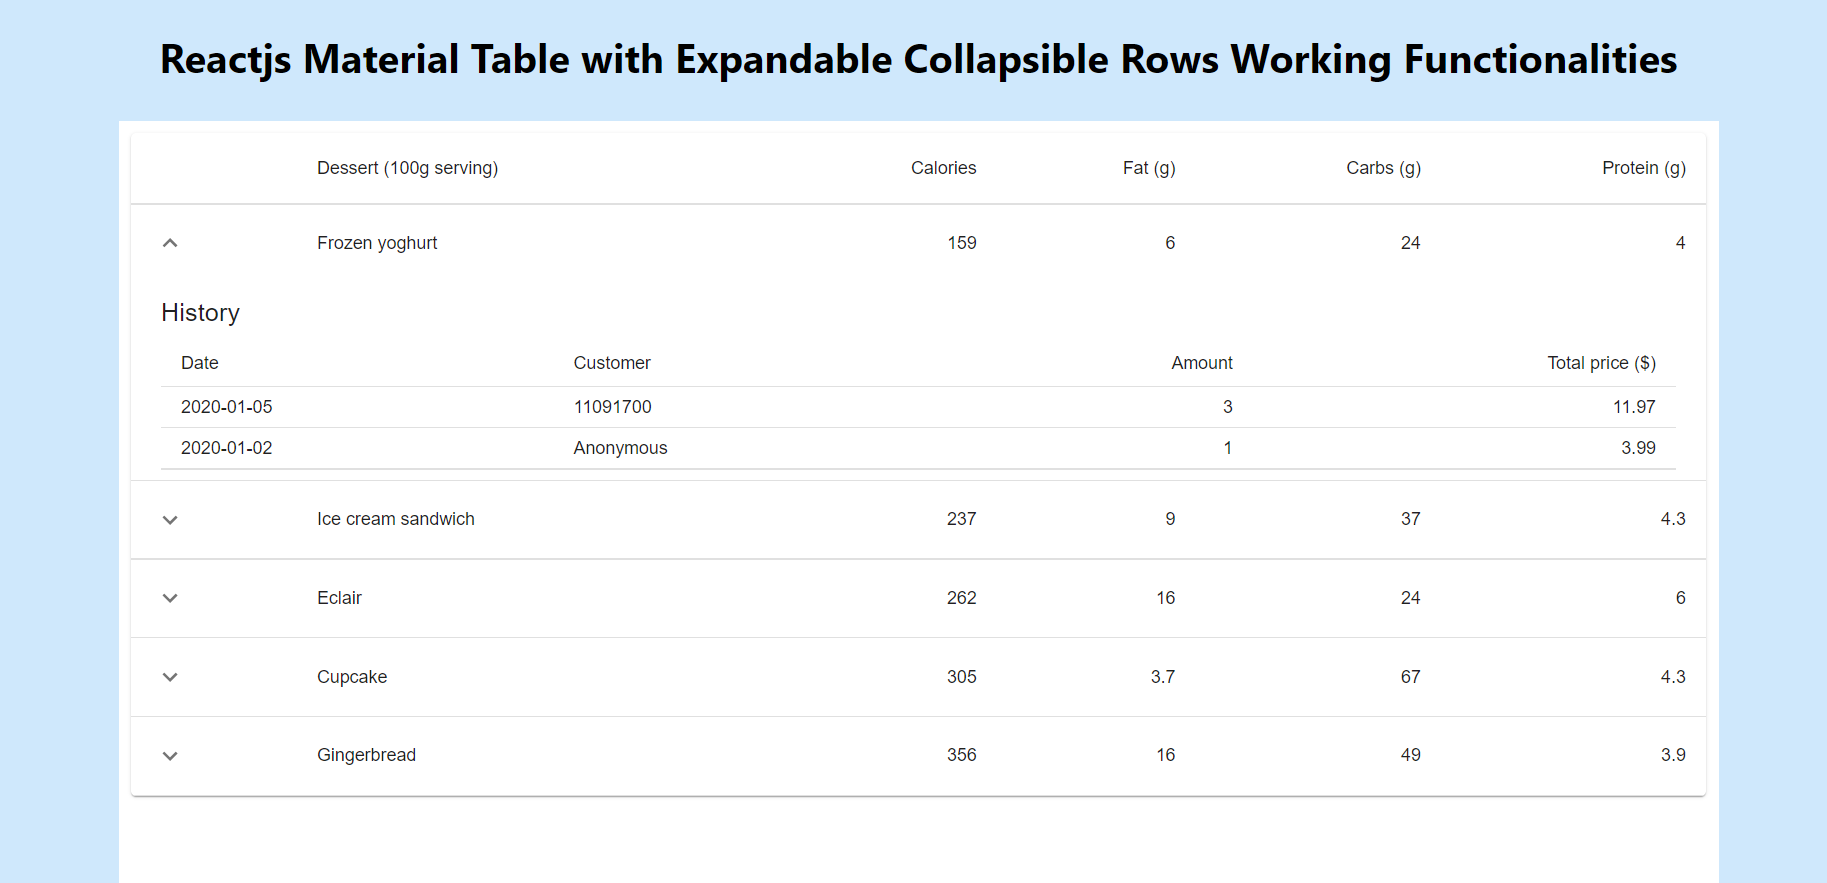 Reactjs Material Table with Expandable Collapsible Rows Working